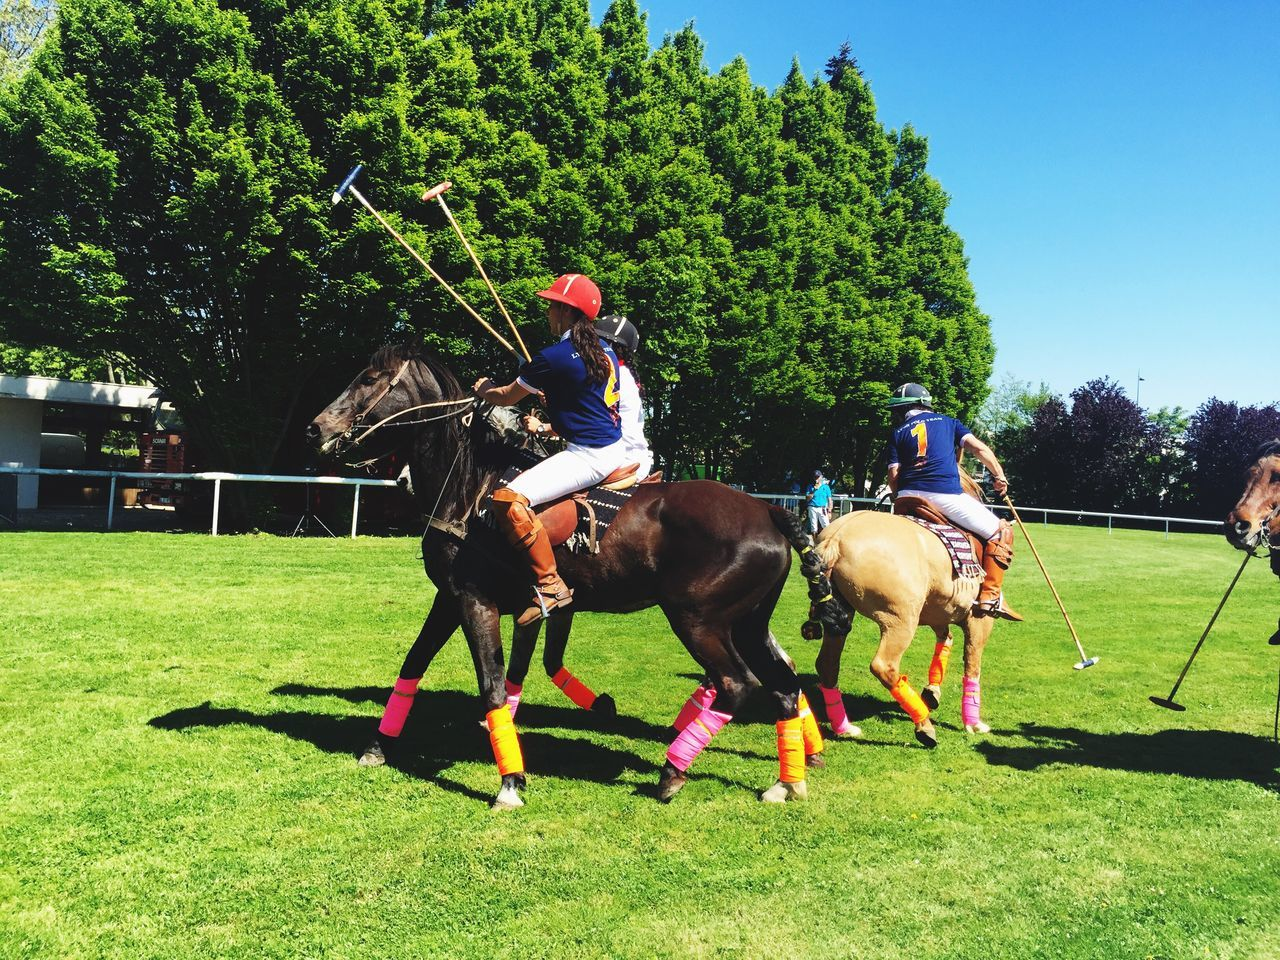 horse, domestic animals, real people, horseback riding, tree, mammal, competition, grass, sport, jockey, sports helmet, field, competitive sport, headwear, day, men, horse racing, helmet, riding, protection, outdoors, growth, leisure activity, skill, referee, sports track, nature, adult, people